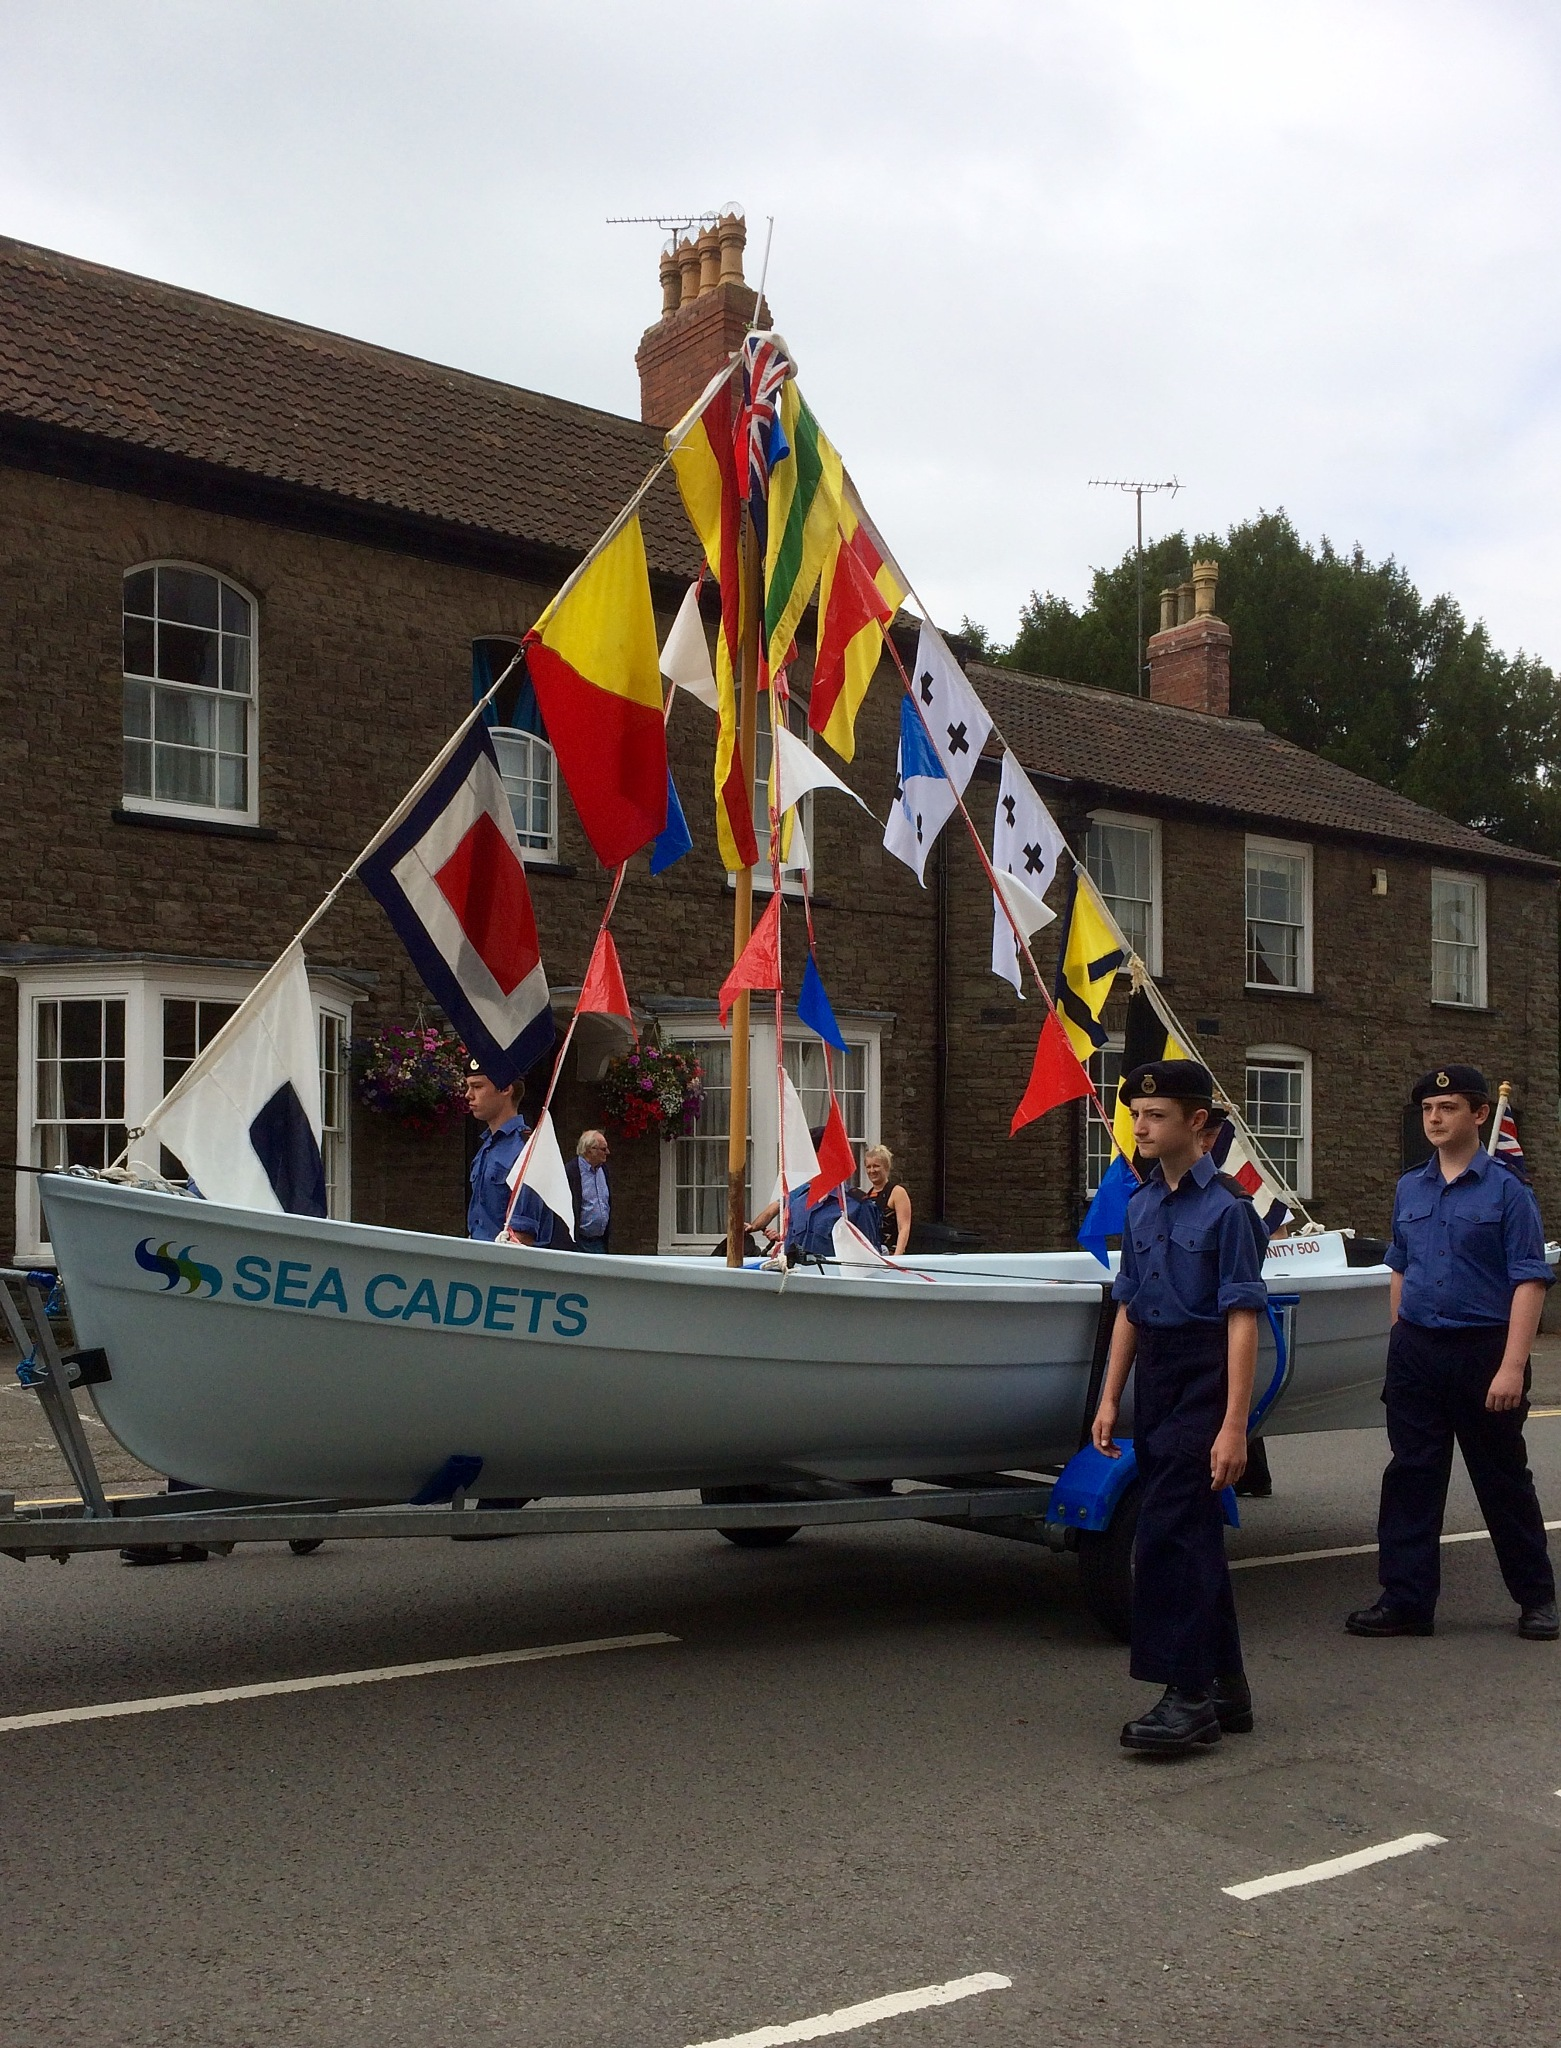 Thornbury Carnival Sea Cadets by Michele